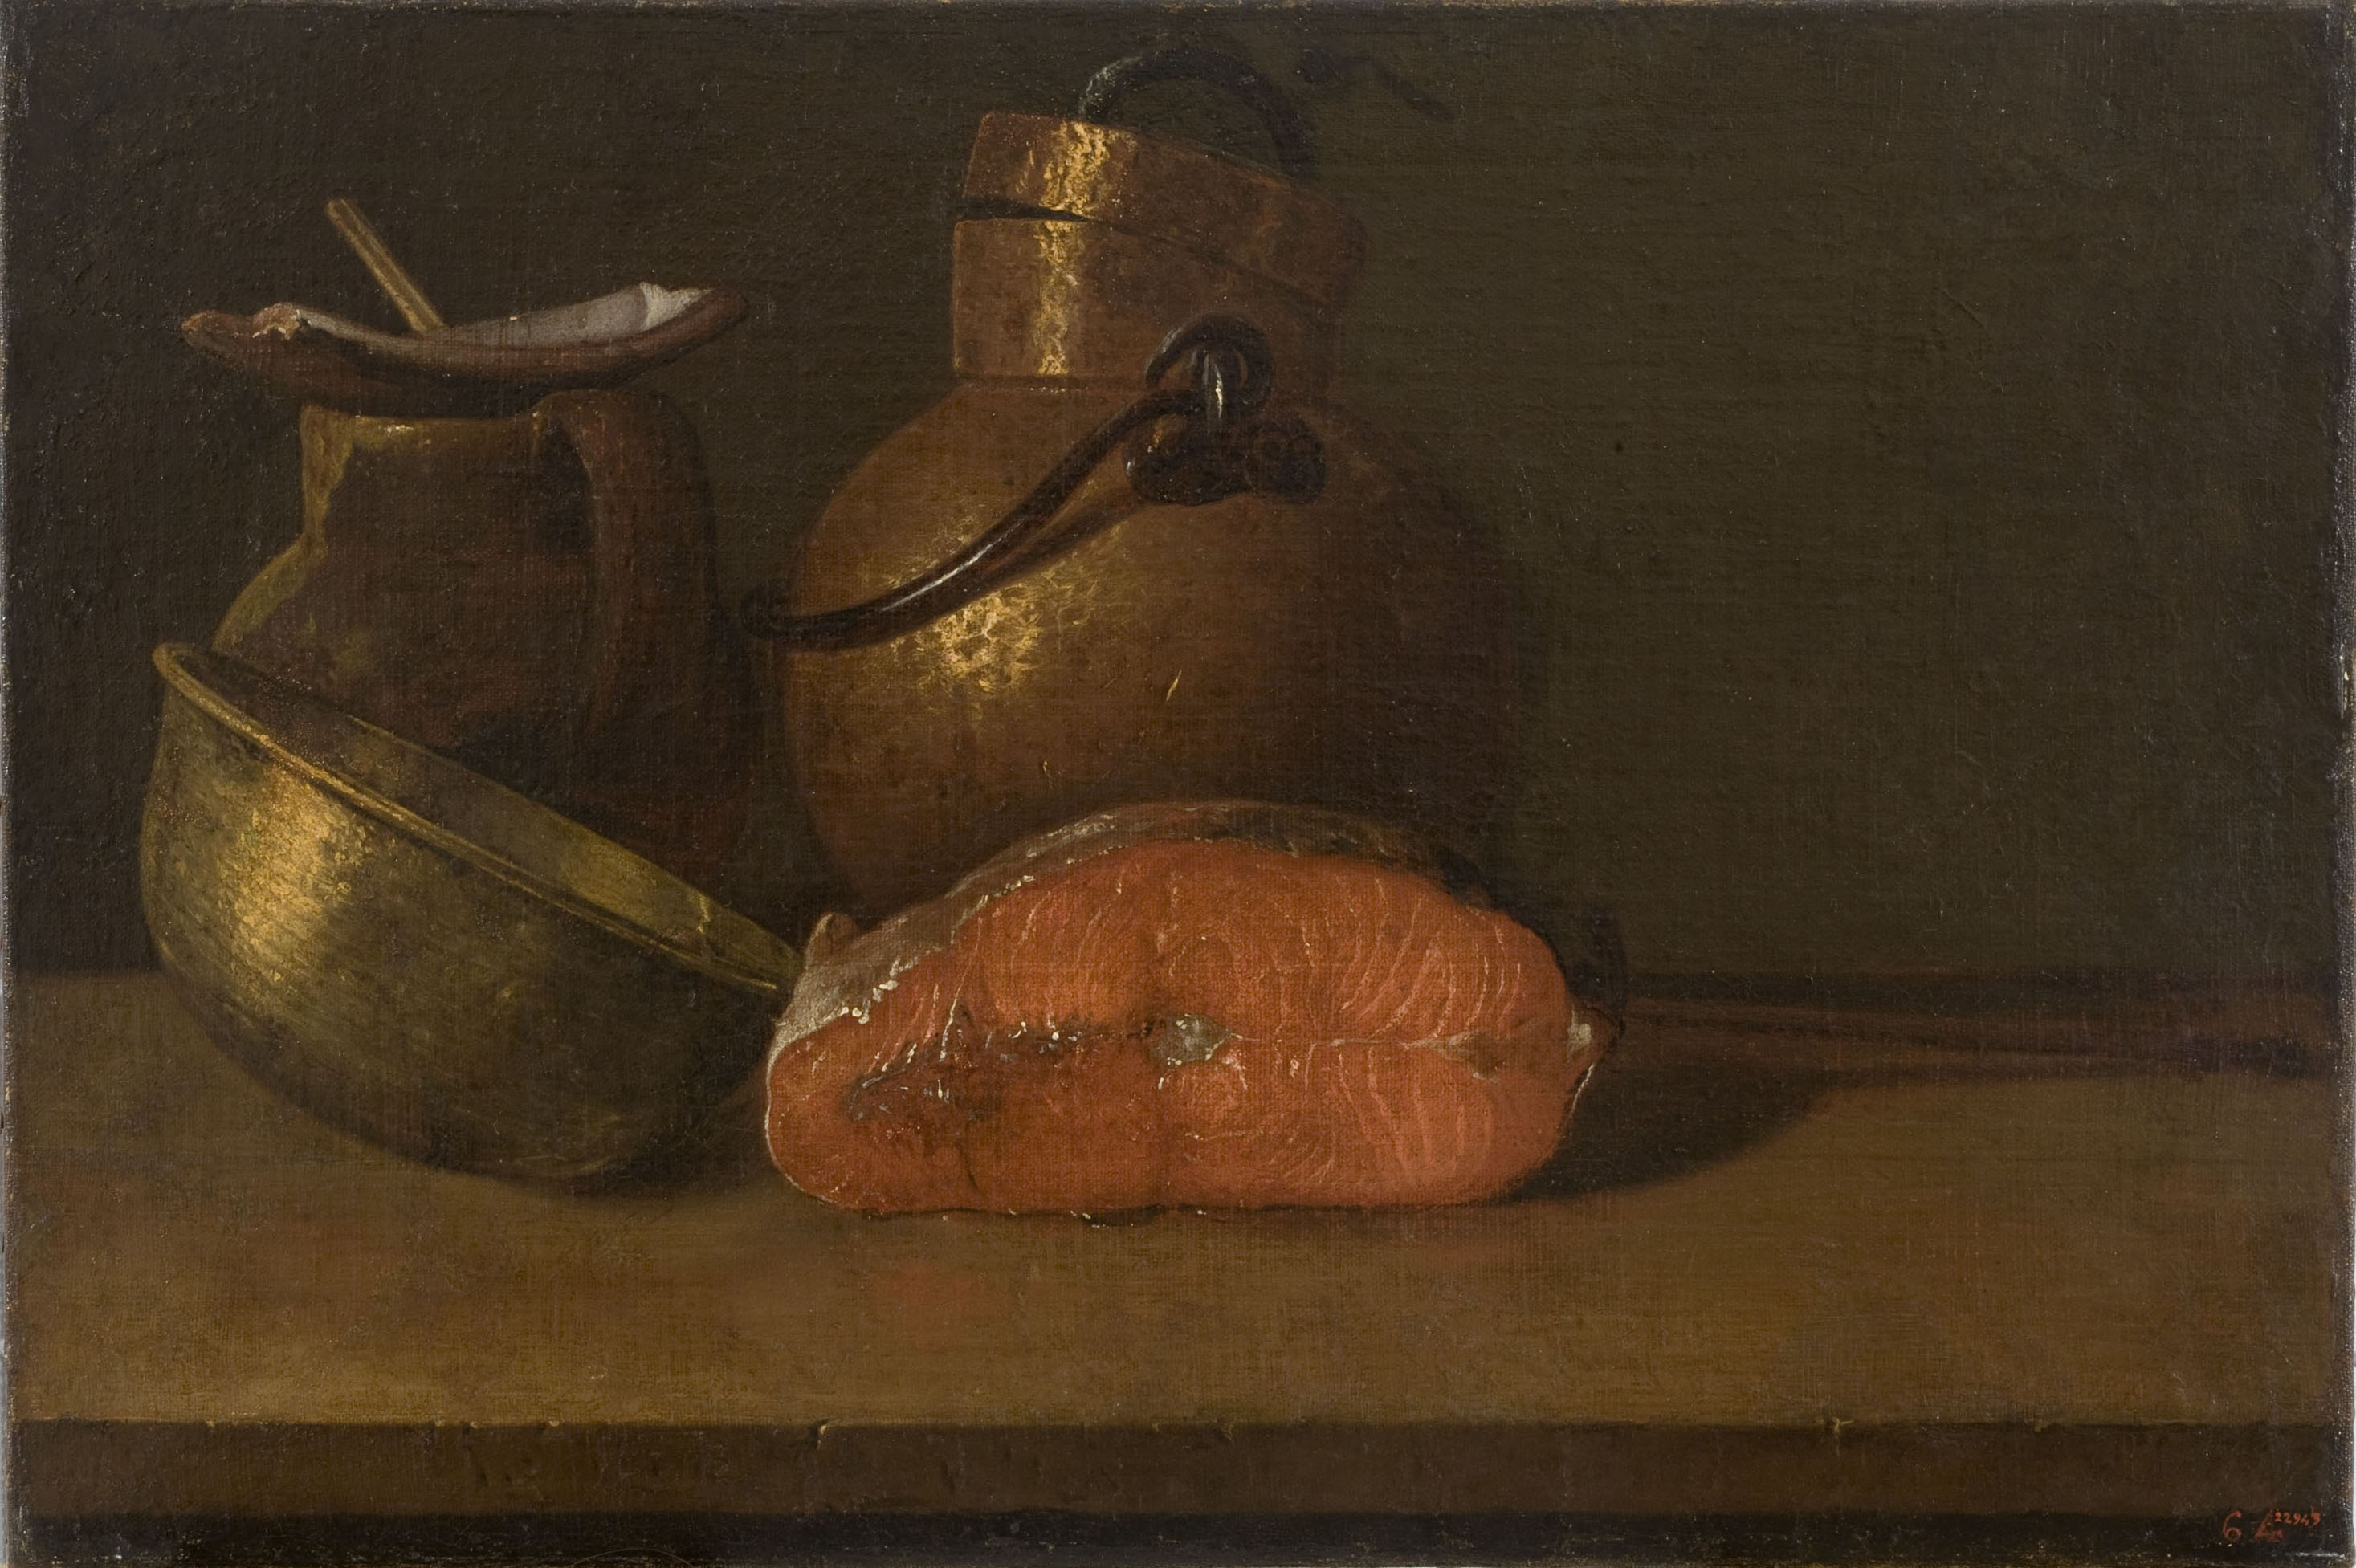 Luis Egidio Meléndez - Still Life with Salmon and Pots - Between 1772-1780